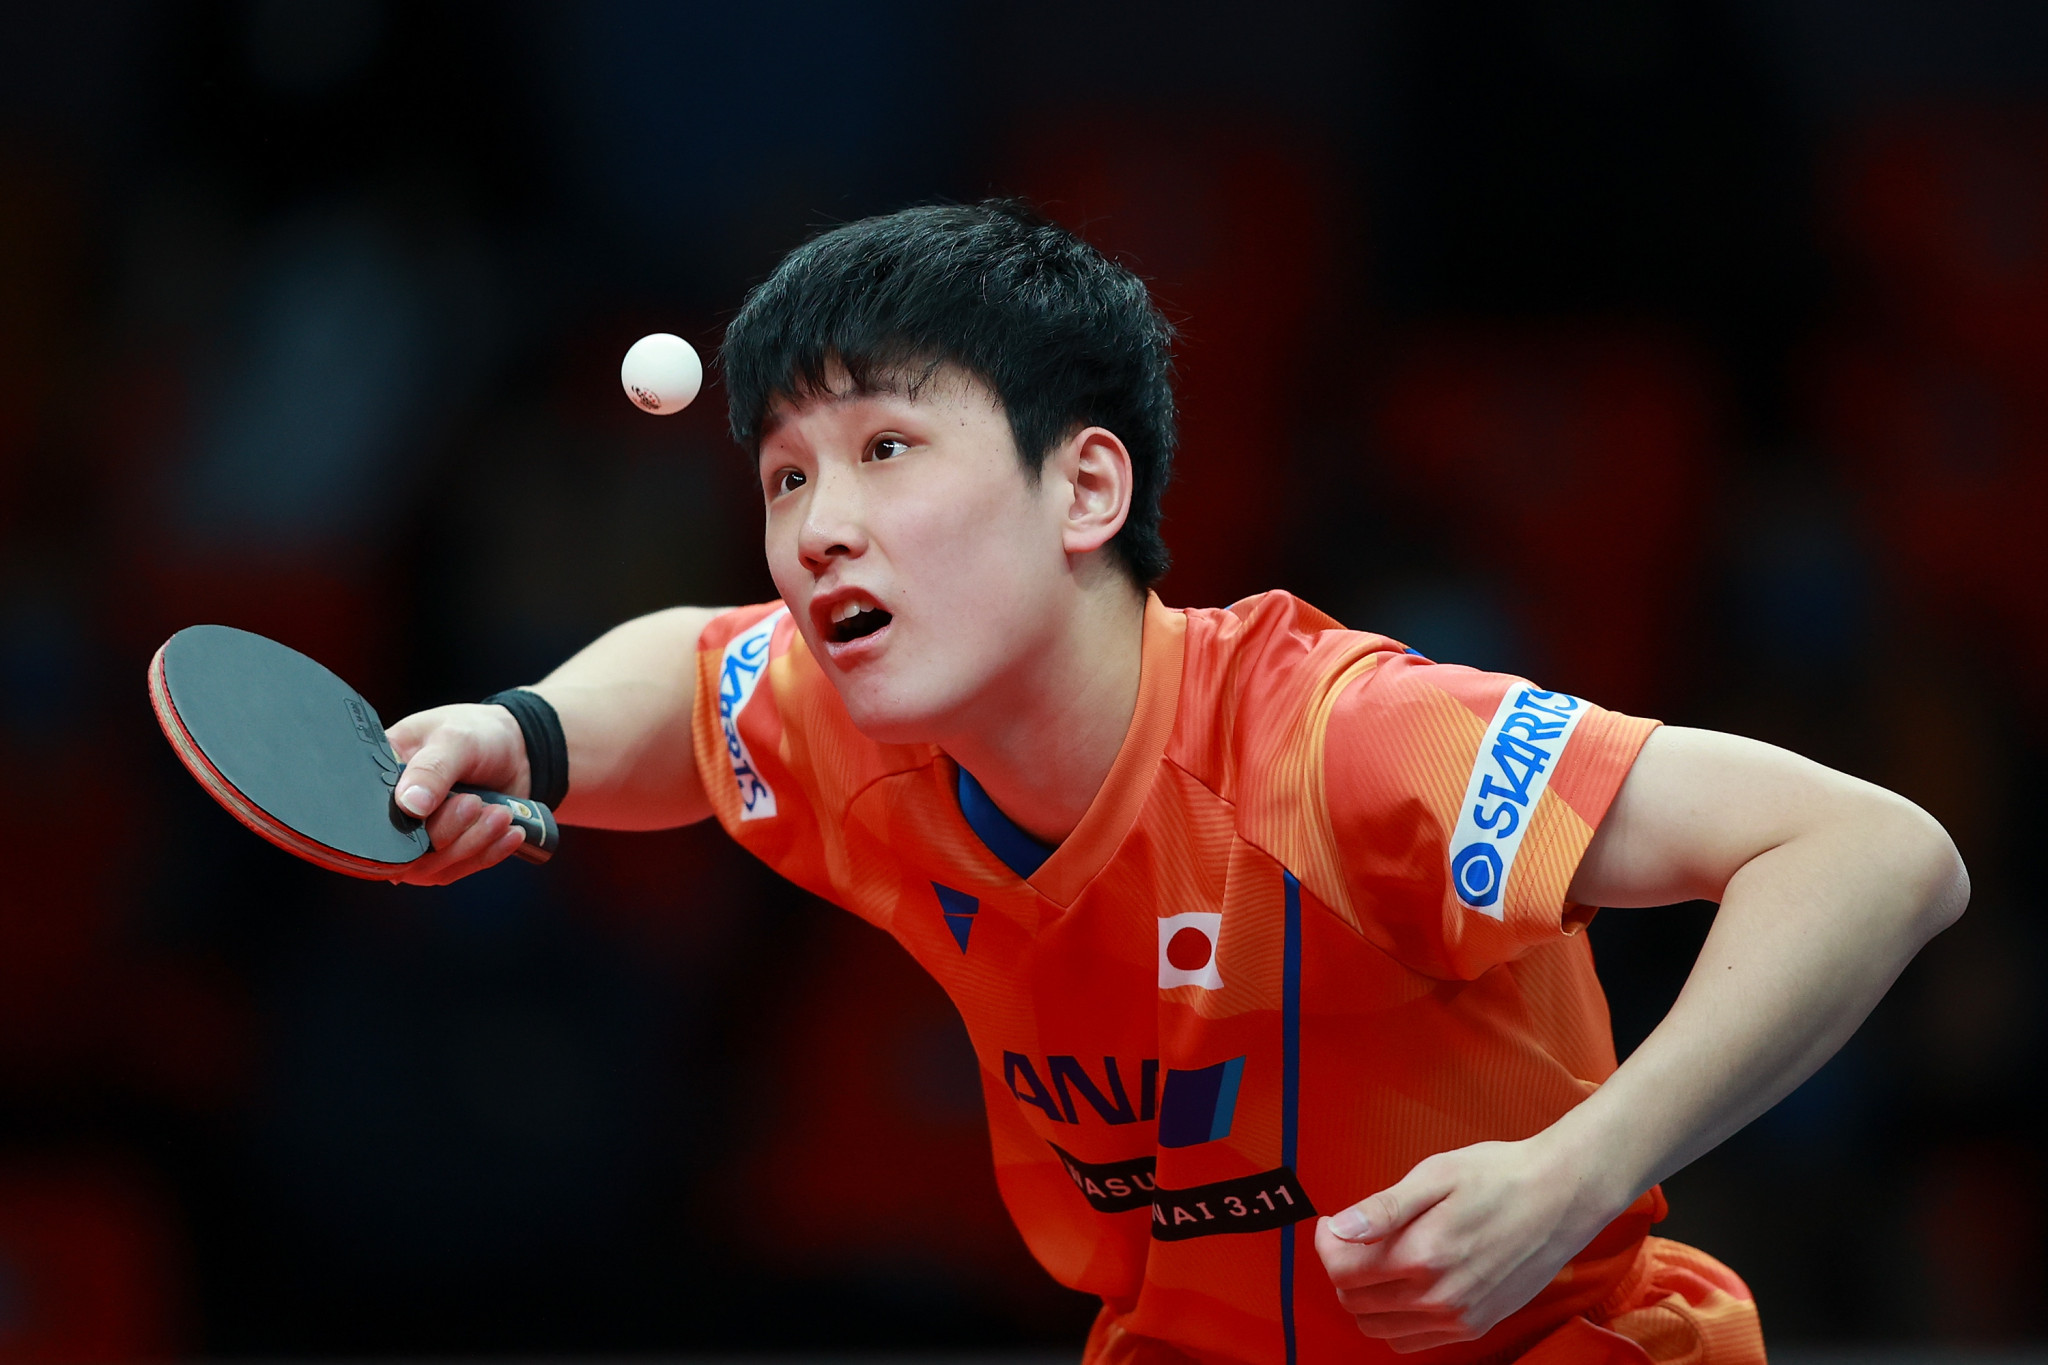 Tomokazu Harimoto will compete in the men's singles final tomorrow where he will face German Ruwen Filus ©Getty Images